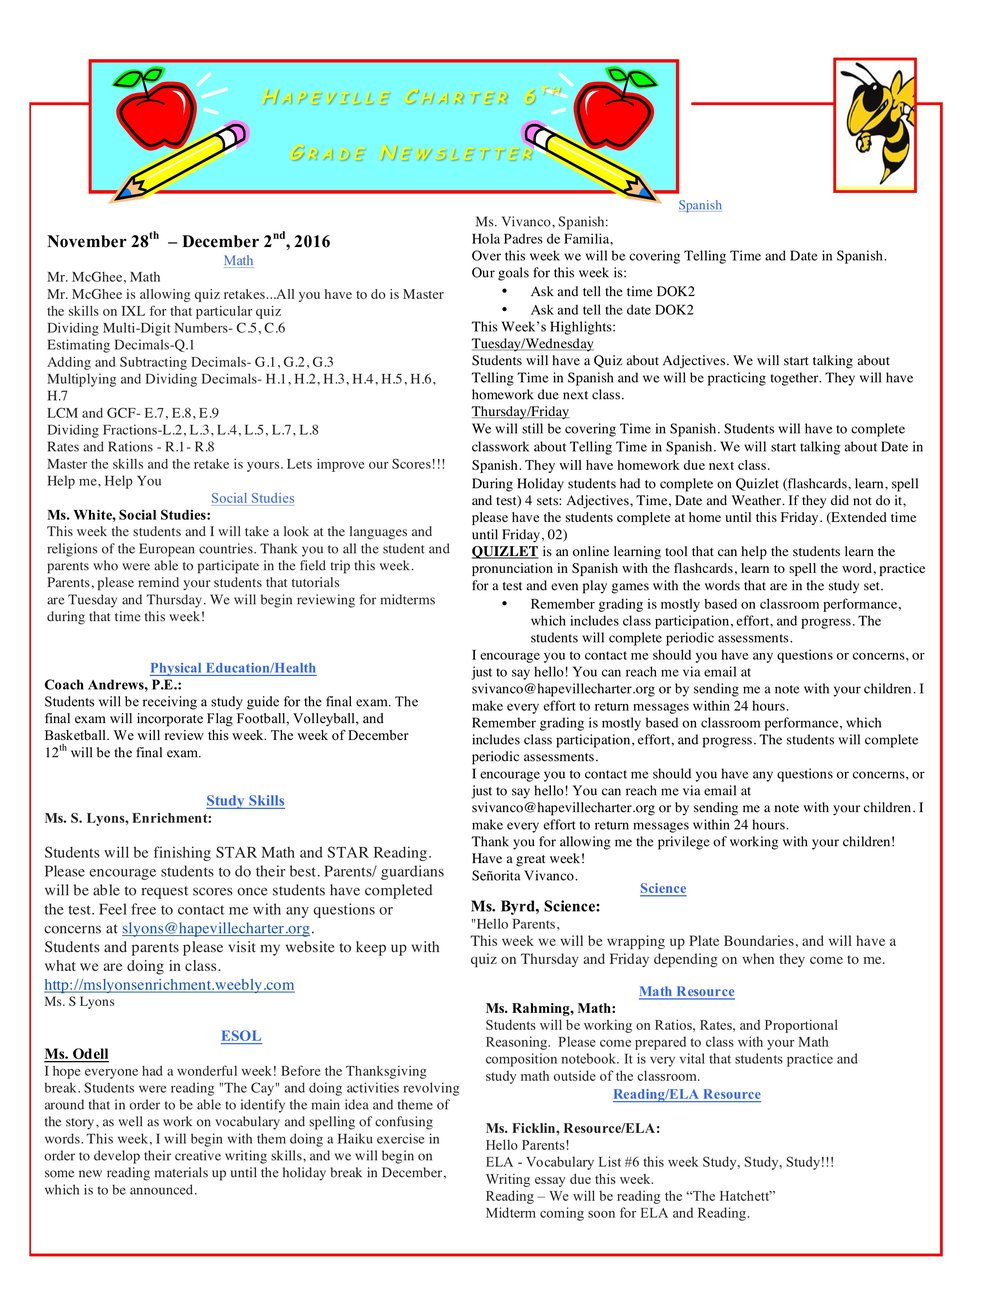 Newsletter Image6th Grade Newsletter 11-28.jpeg